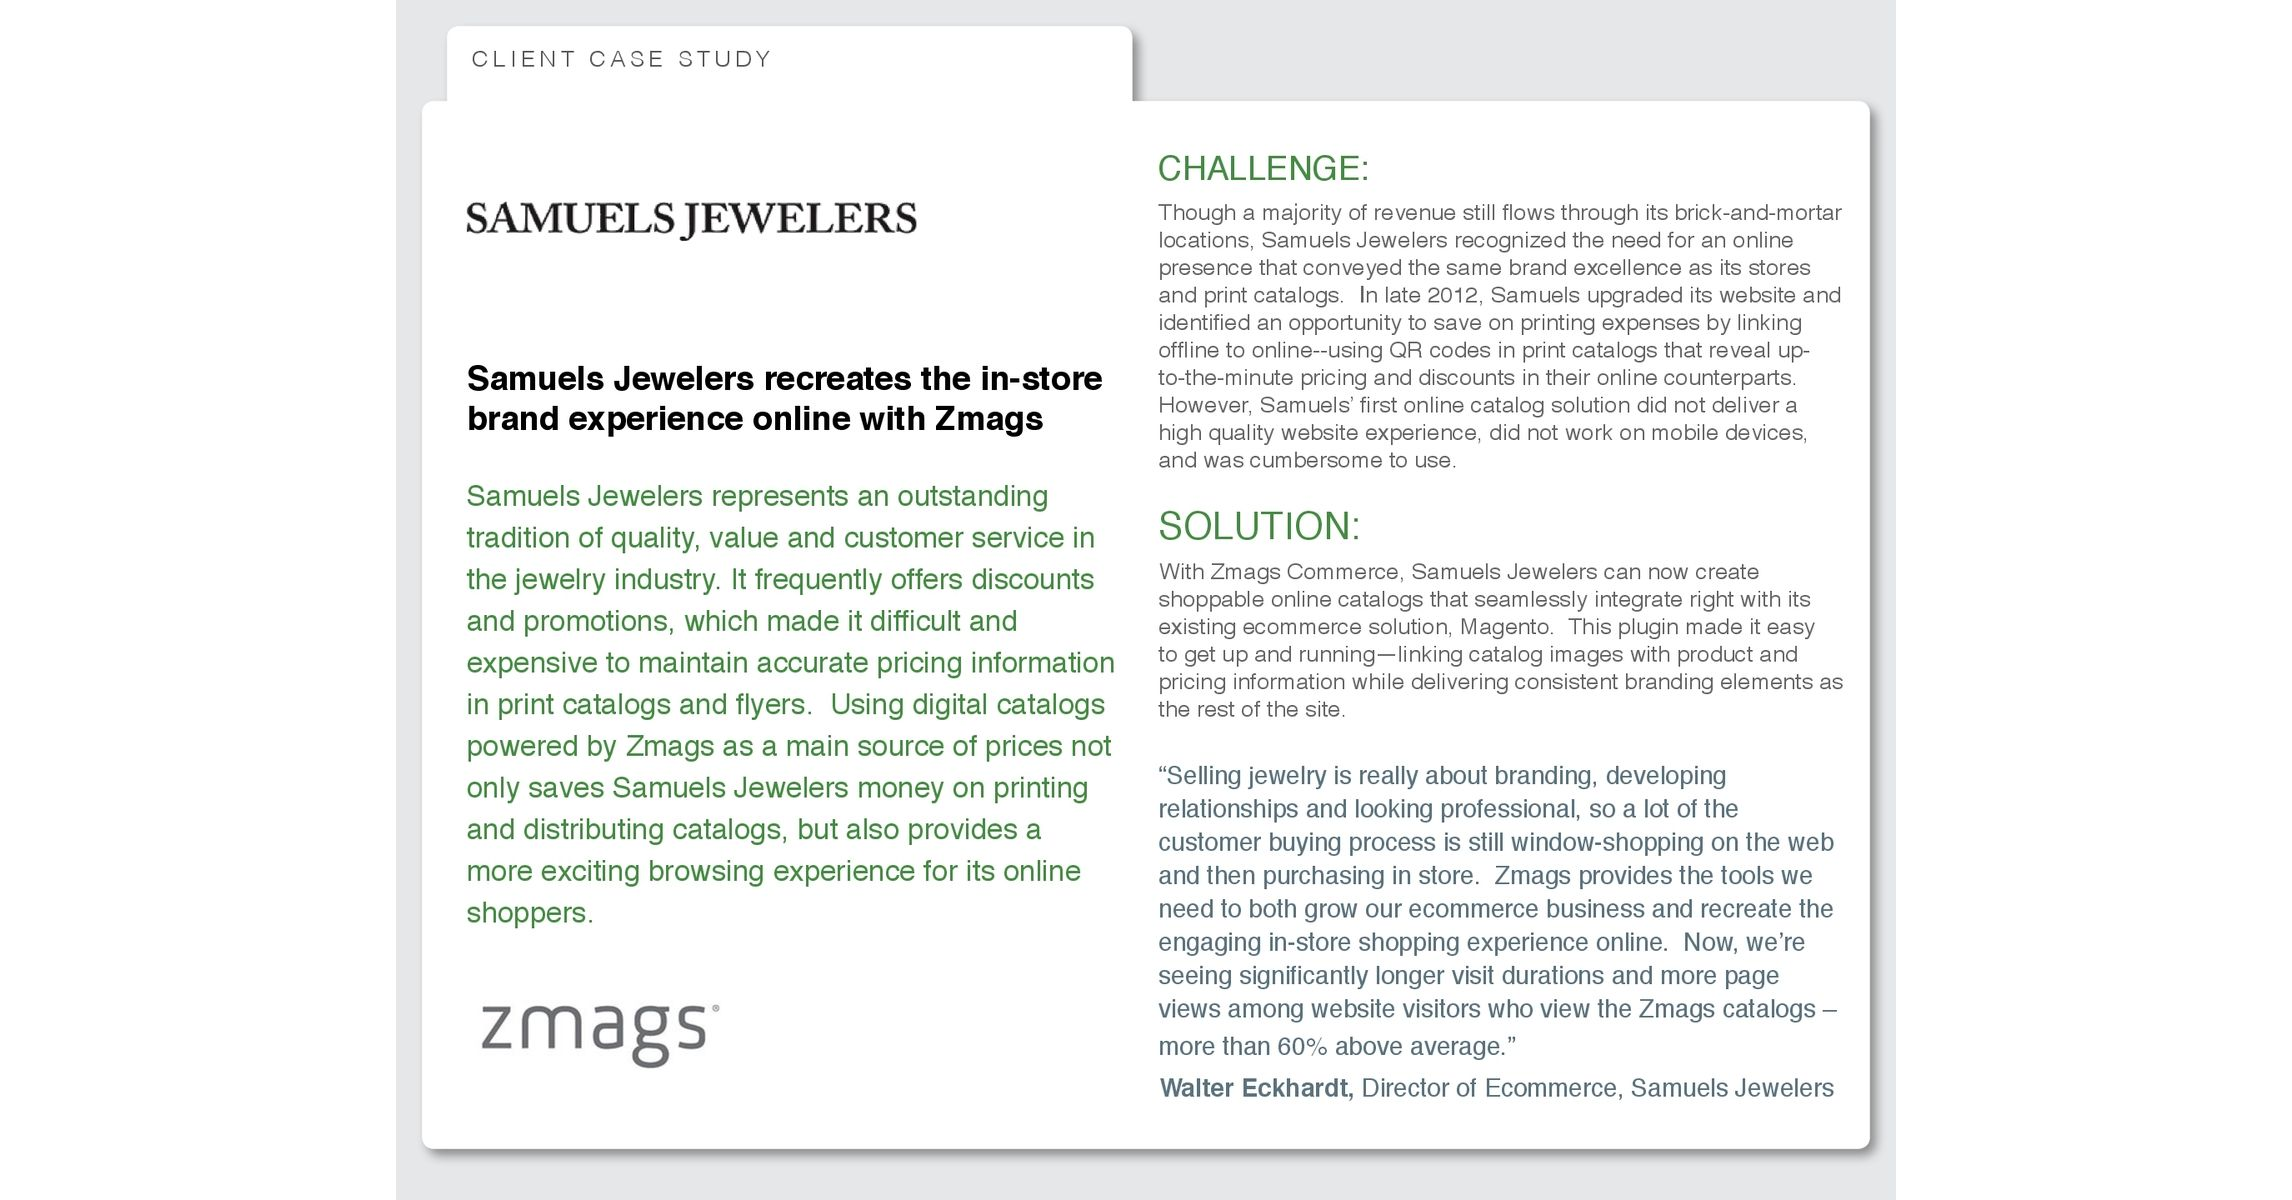 hallstead jewelers case analysis Hallstead jewelers - a retail jeweler has relocated to a larger store and is experiencing losses for the first time request case study solution.